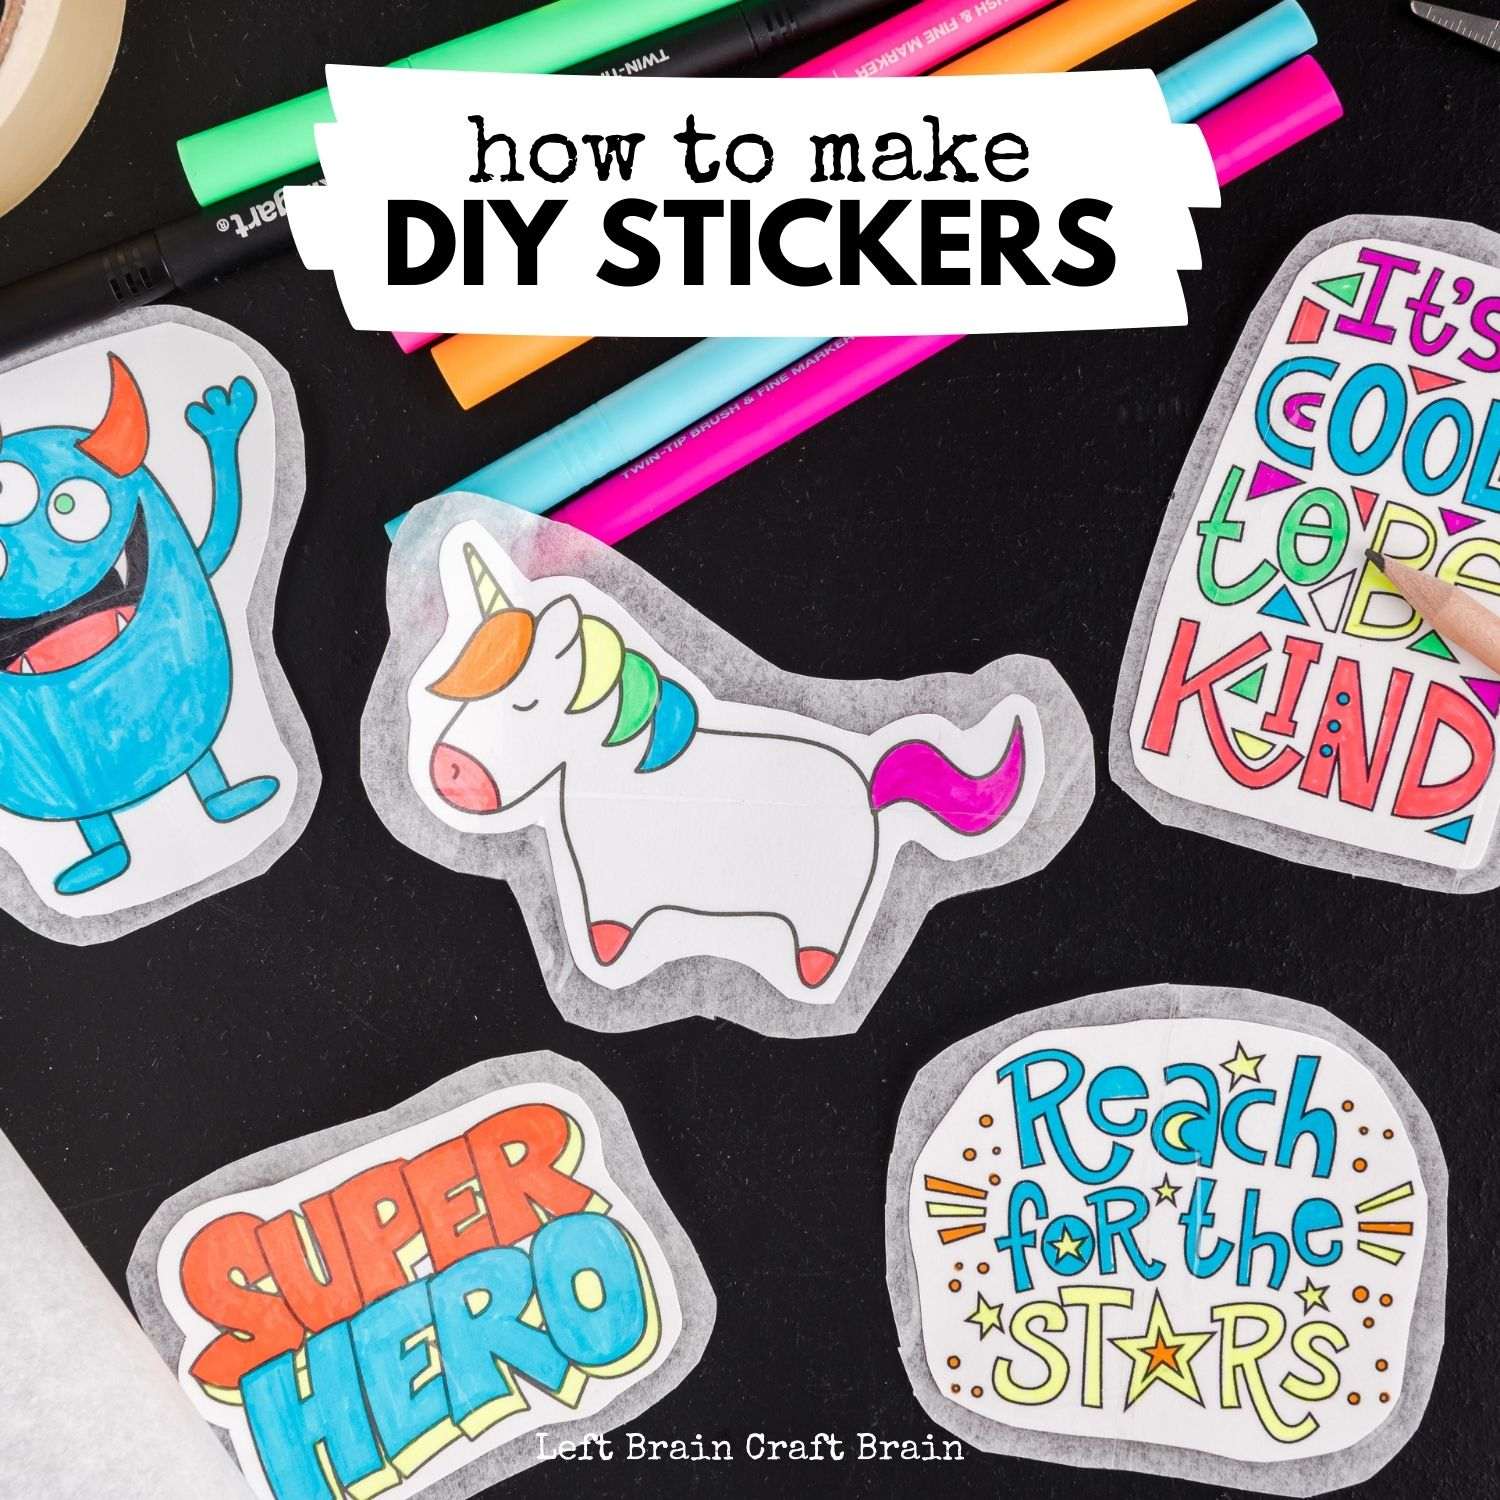 Make your own DIY stickers with a super easy process using basic supplies. Kids will love this activity. They're fun to add to presents, too.